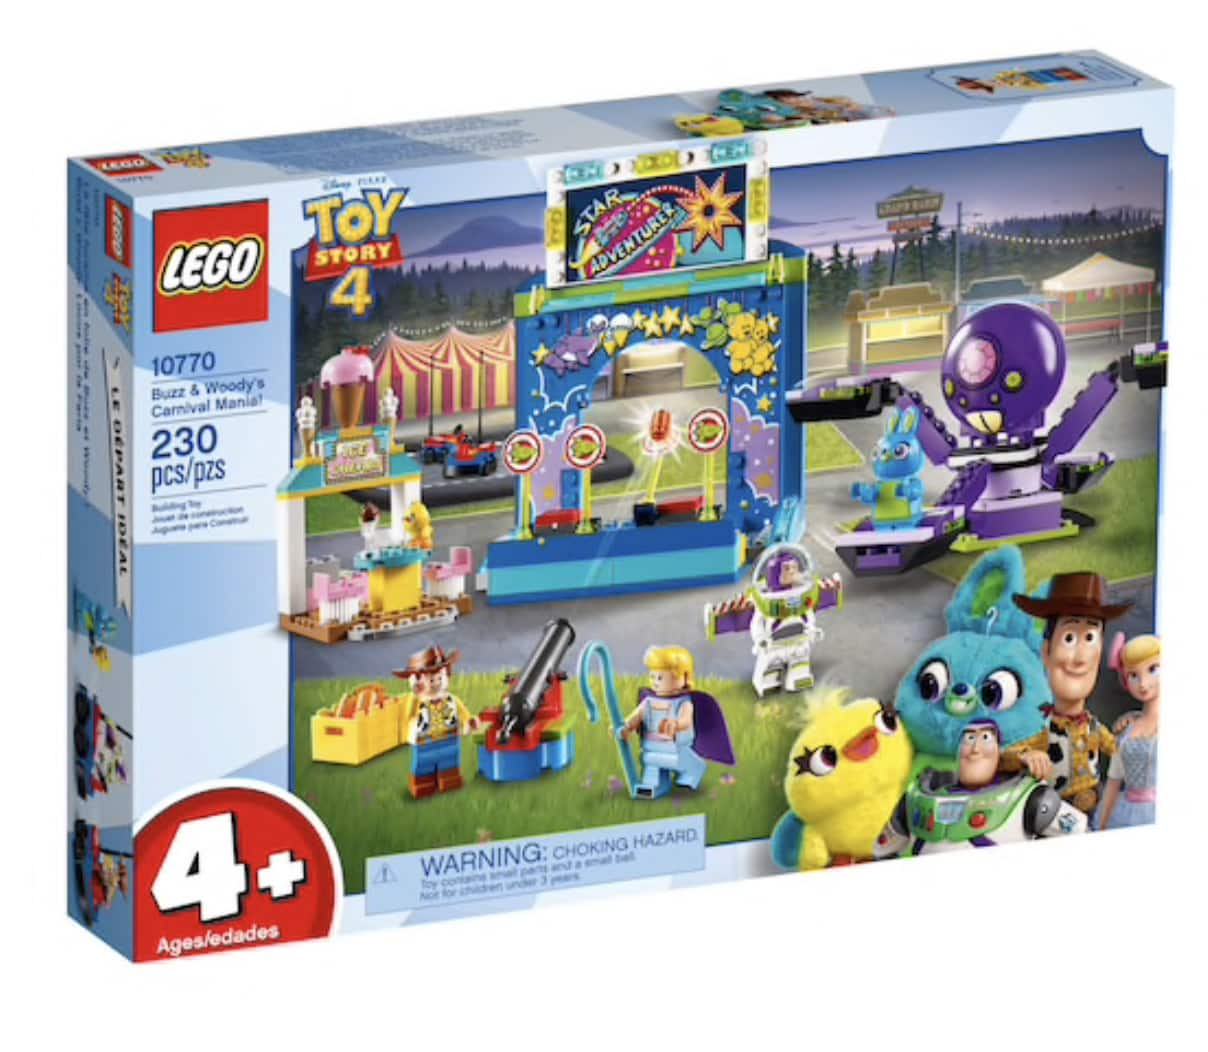 Michaels - Lego Toy Story 10769 and 10770, $49.50 free shipping, (regular 84.98)